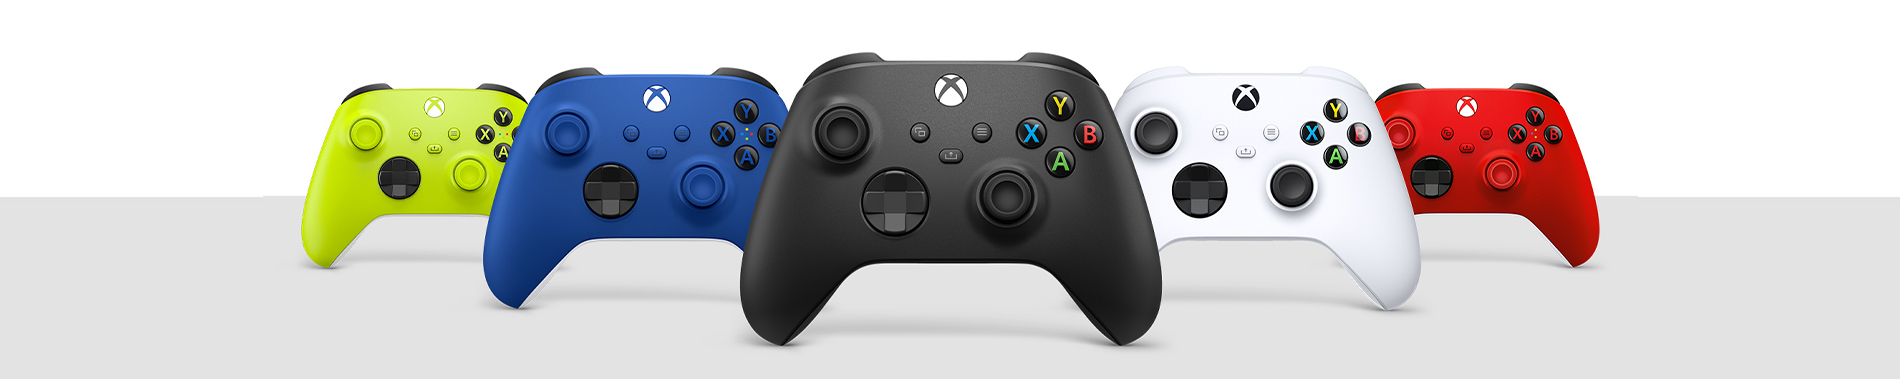 XboxControllers Refresh 1.6.end